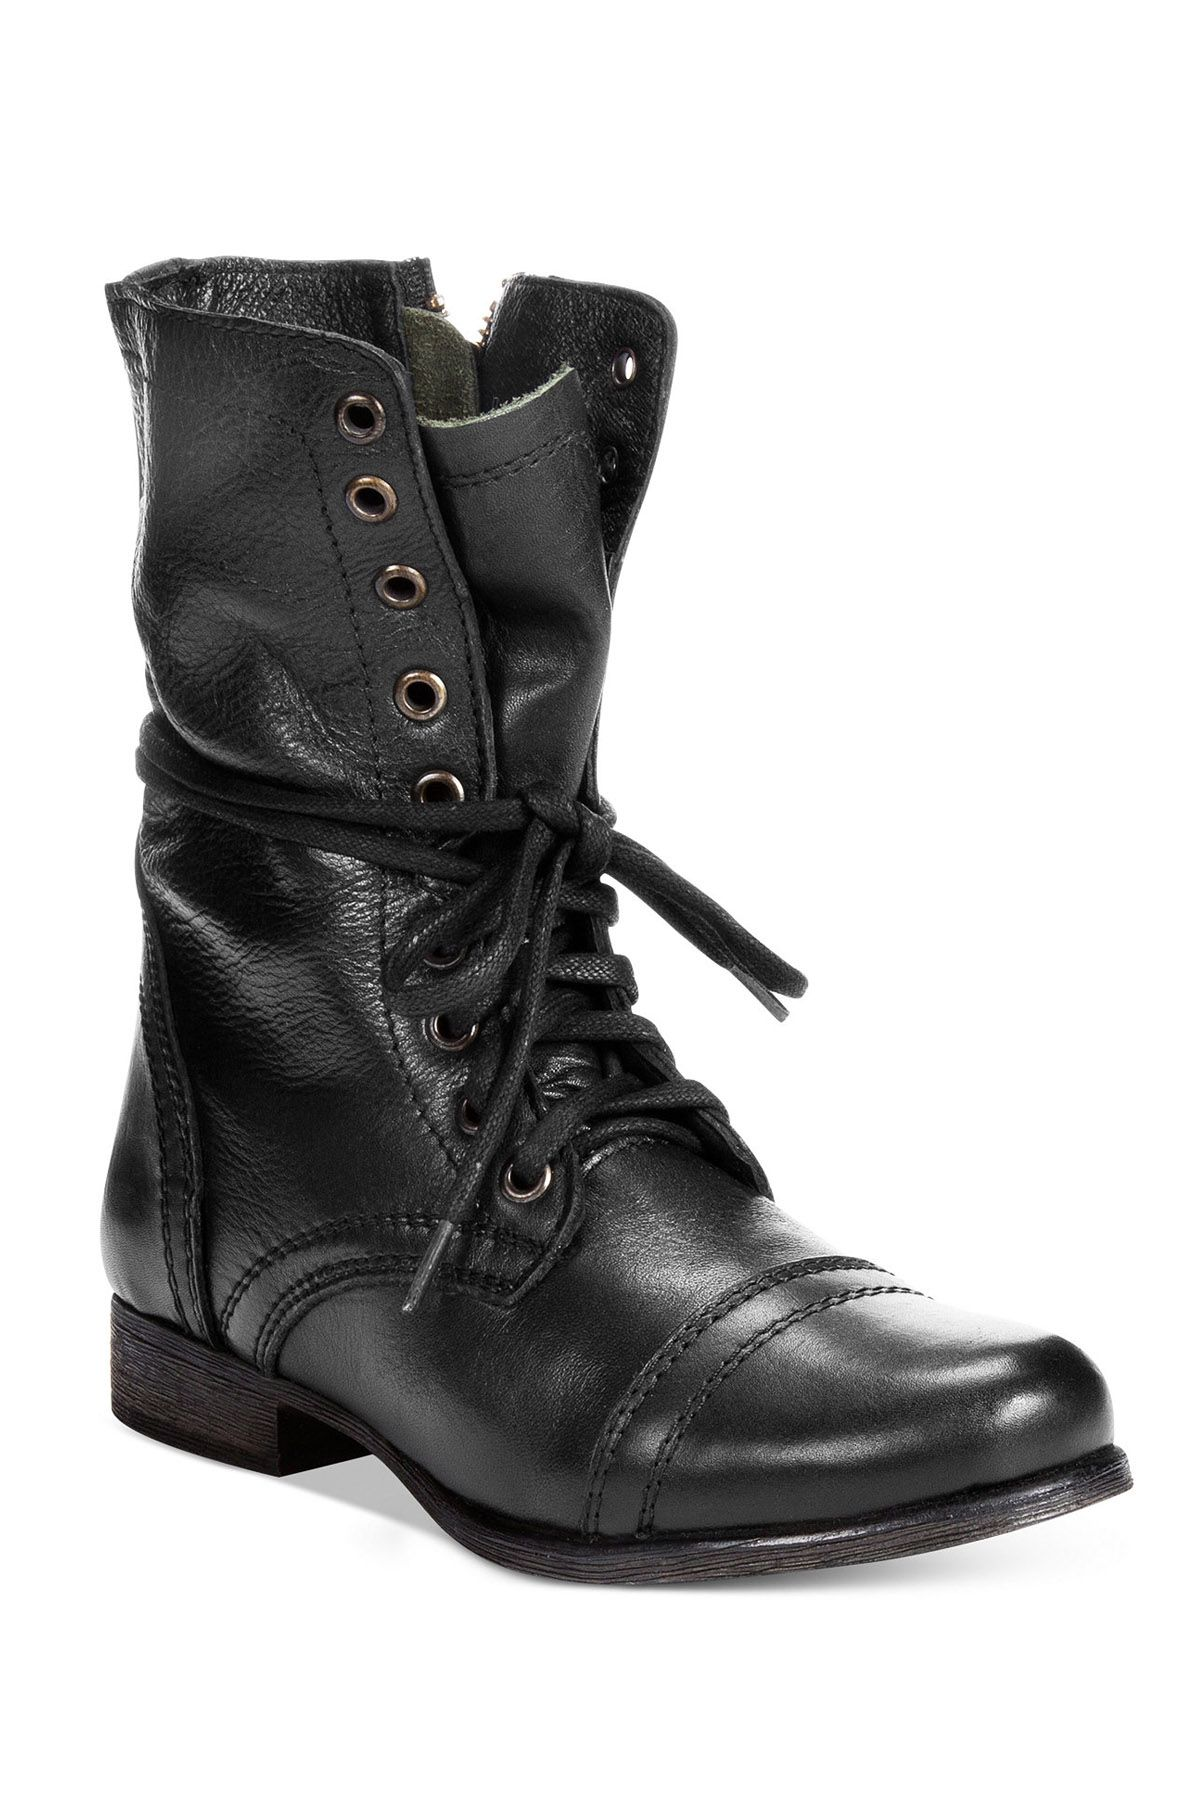 boots vintage dr rometty store comfortable s most comforter martens us p smooth shoes official womens women